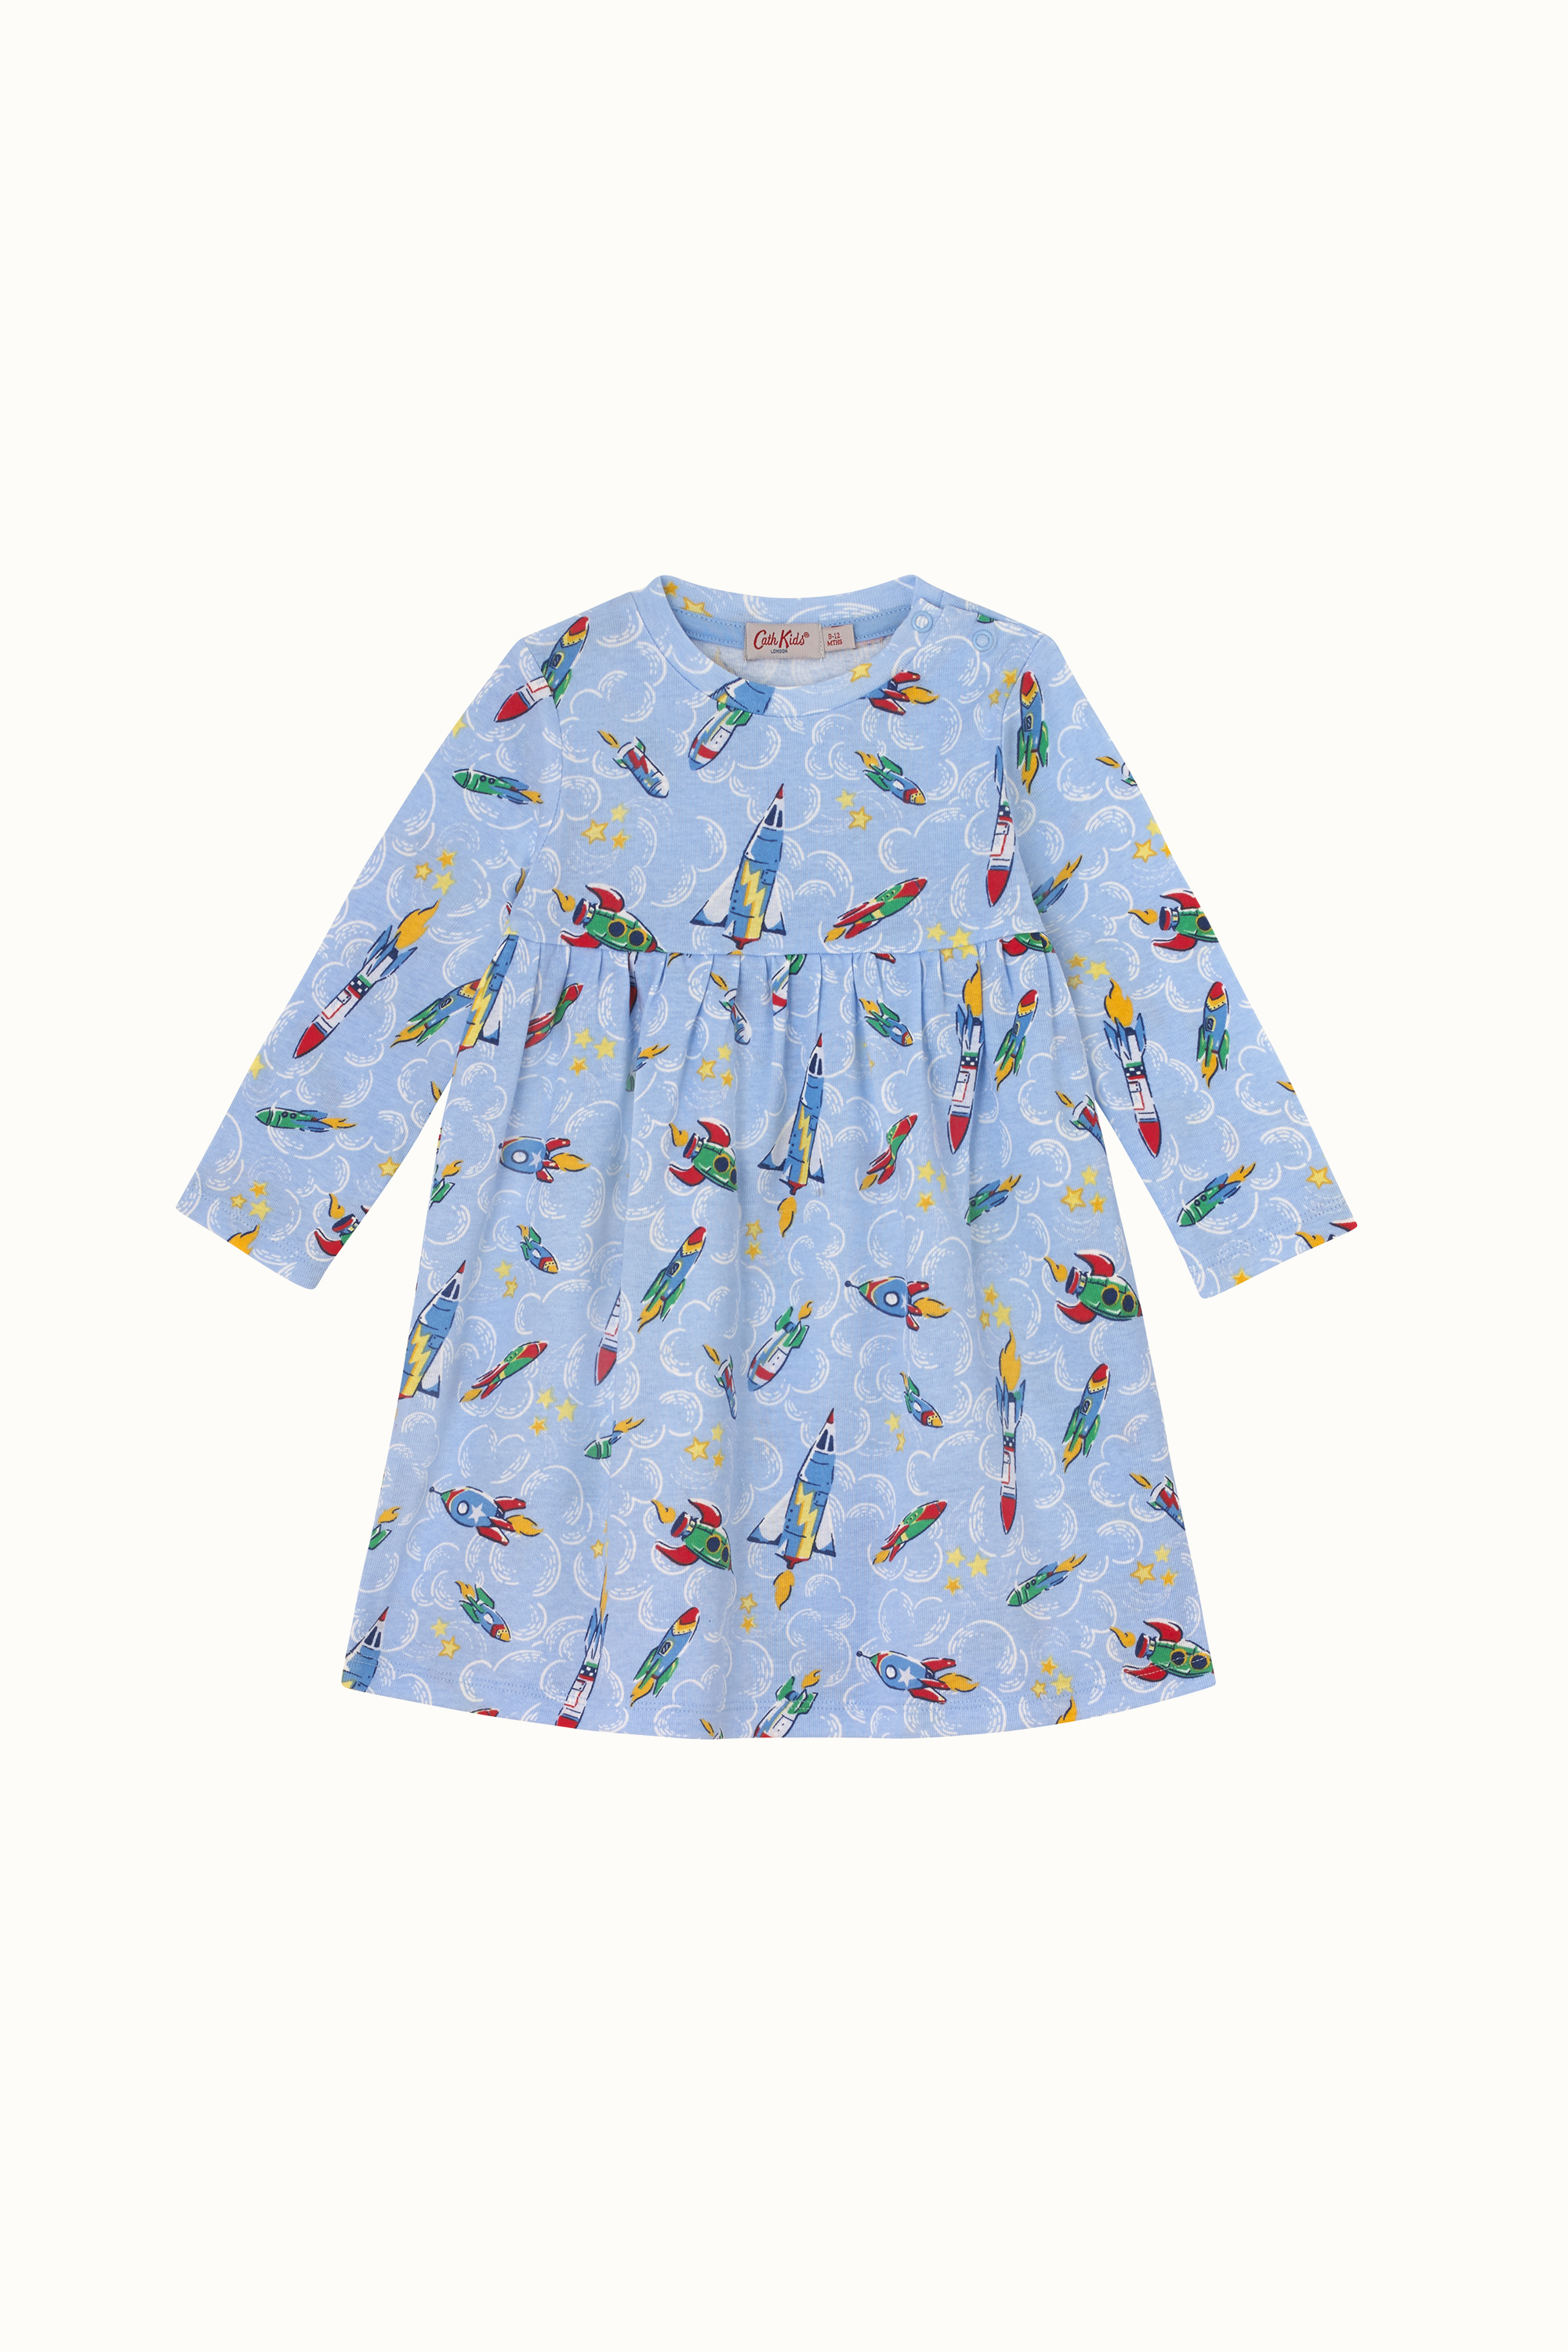 Cath Kidston Rockets Baby Long Sleeve Everyday Dress in Light Blue, 3-6 Mo